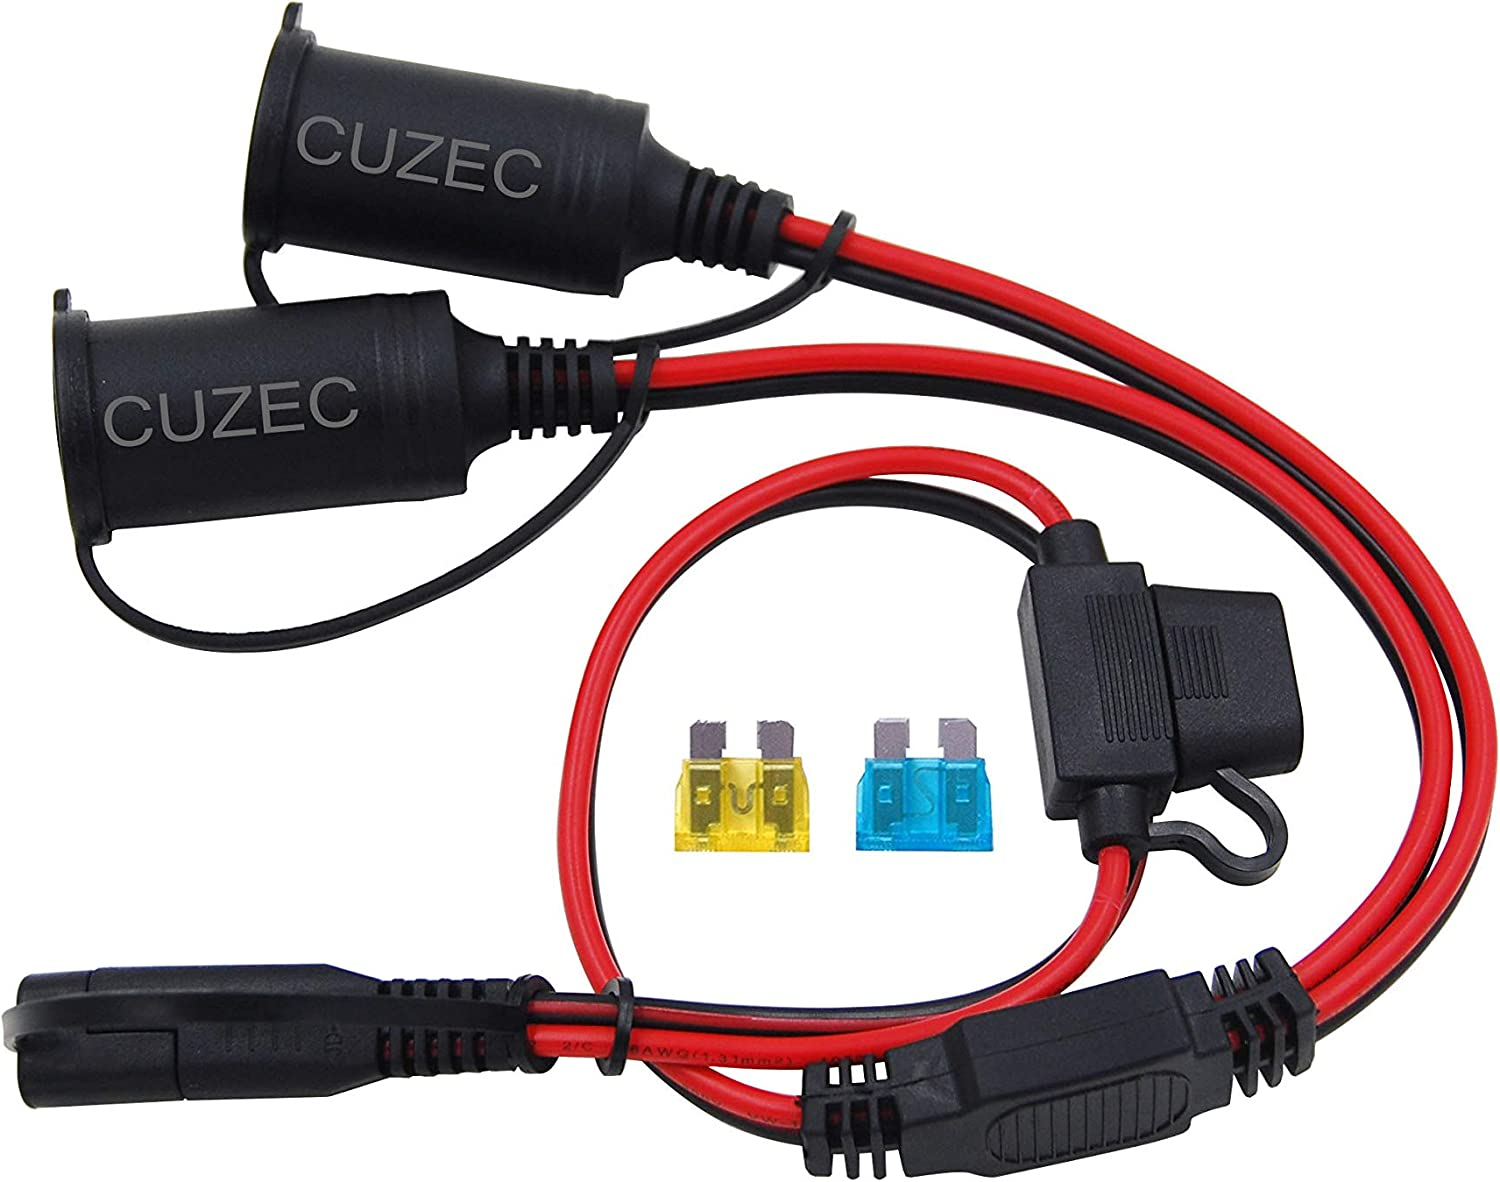 CUZEC 2-Way Splitter SAE Connector,1 to 2 SAE Connector Power Charger Adapter